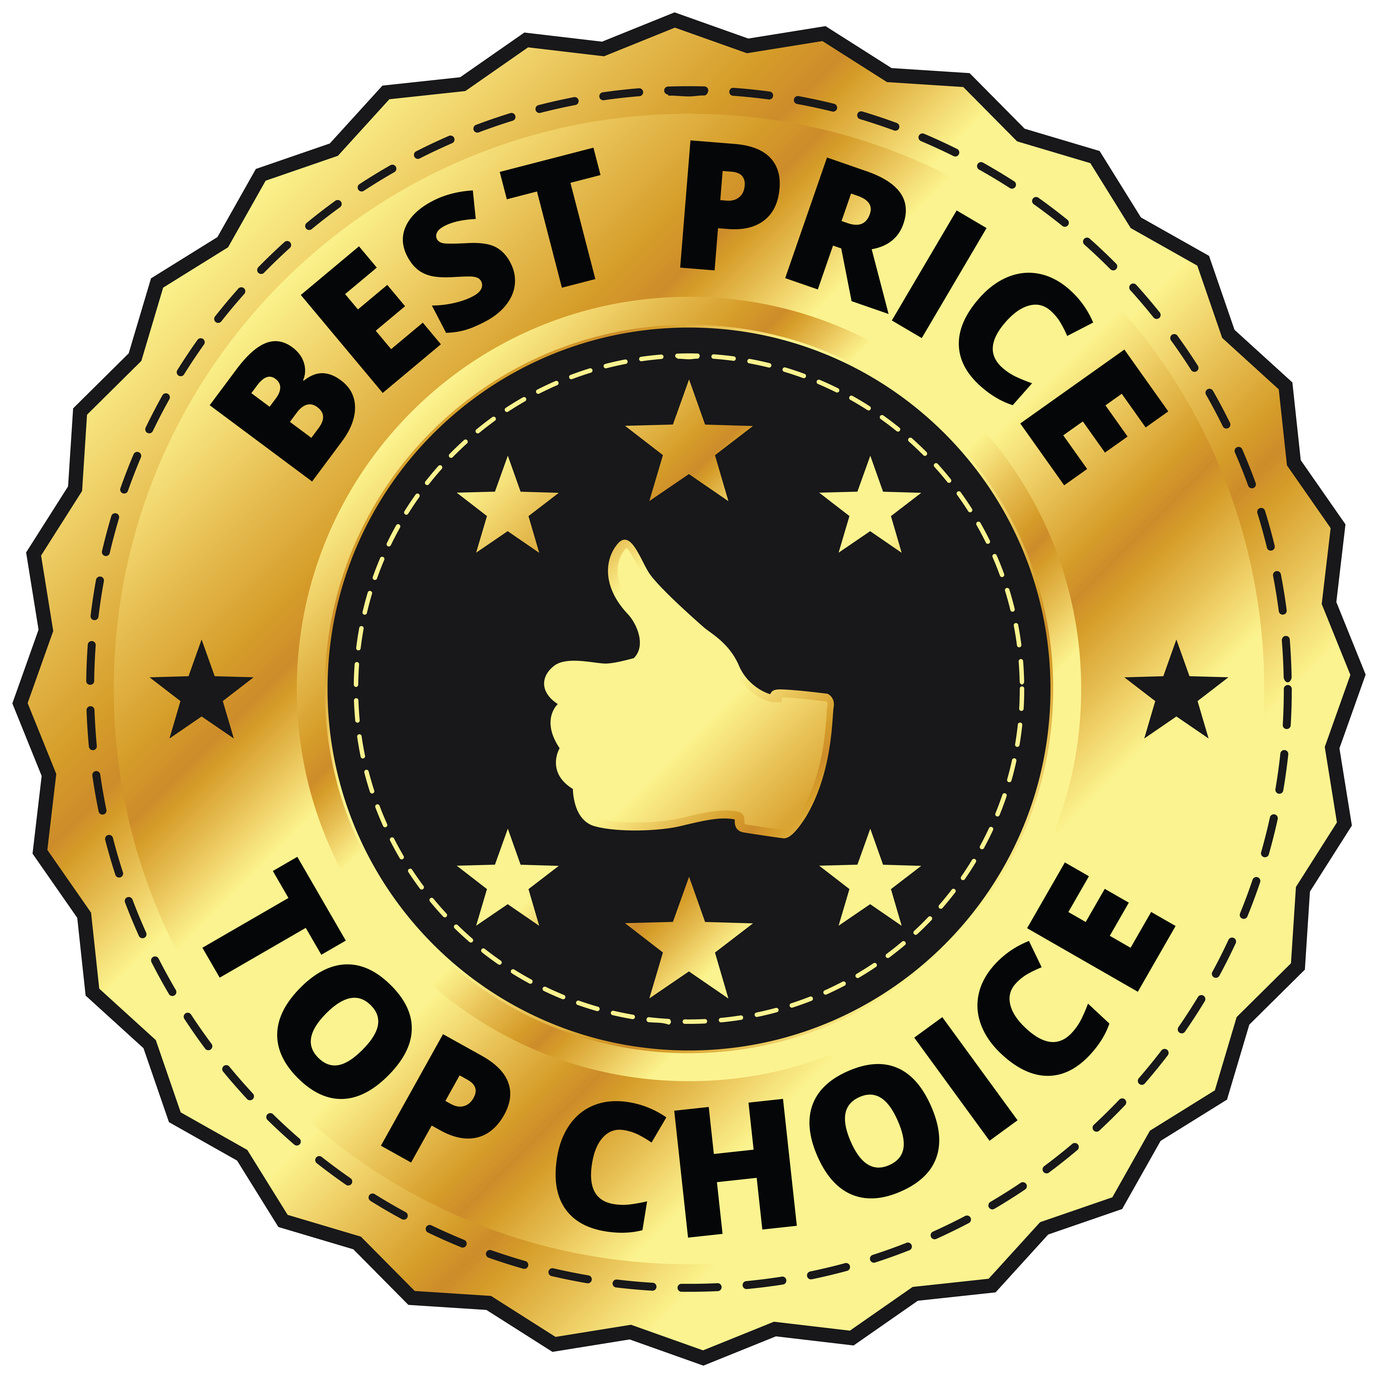 The best prices